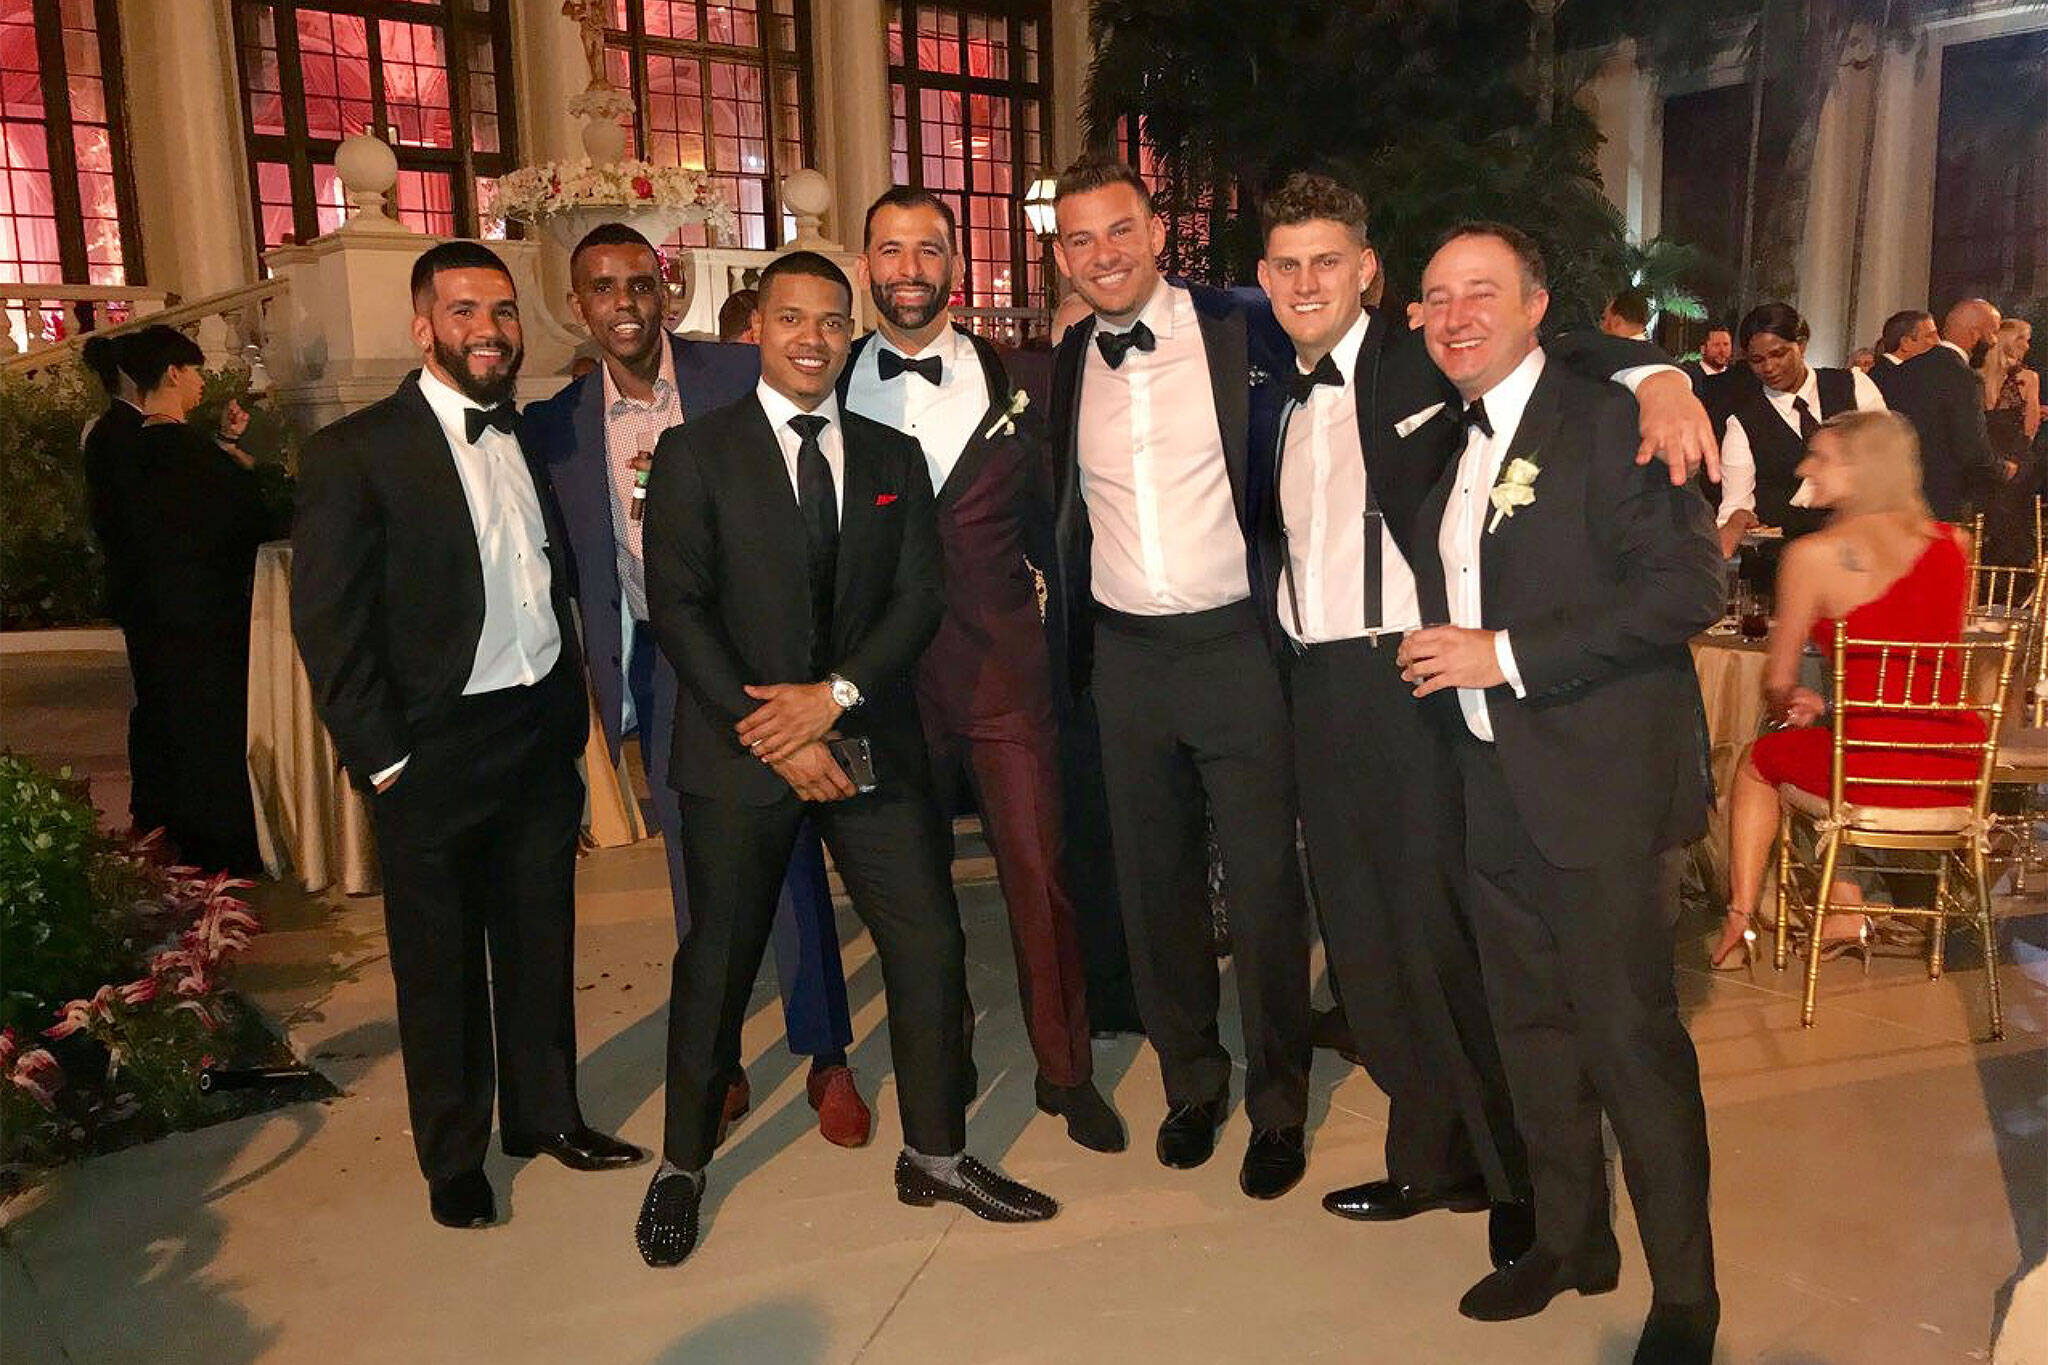 Jose Bautista wedding